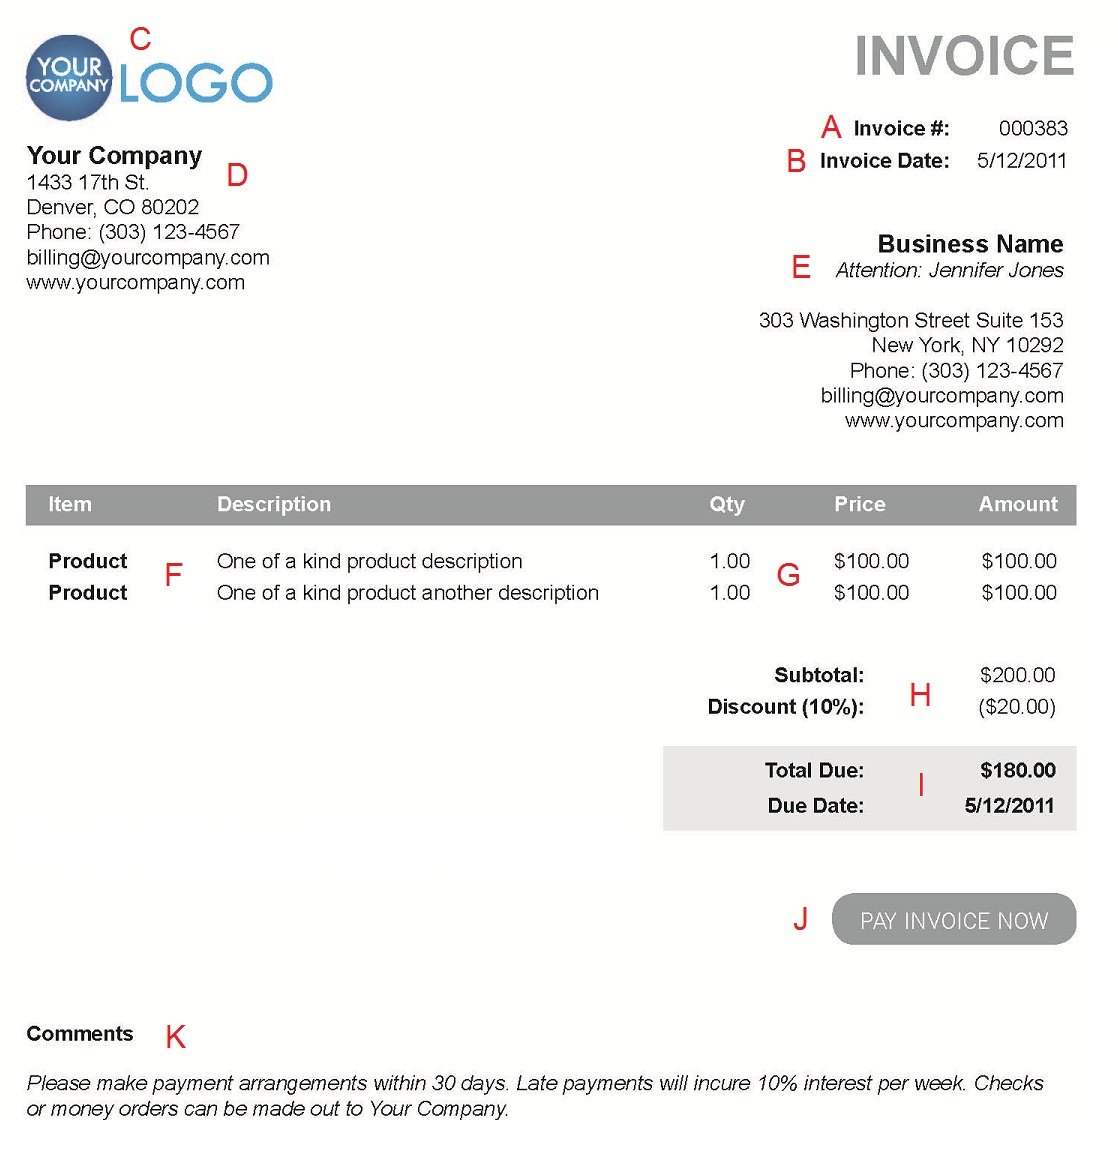 Centralasianshepherdus  Ravishing The  Different Sections Of An Electronic Payment Invoice With Luxury A  With Cute Synonyms For Receipt Also Printable Taxi Receipt In Addition Make Receipts Online And Microsoft Excel Receipt Template As Well As Flyte Tyme Receipts Additionally Goodwill Donations Receipt From Paysimplecom With Centralasianshepherdus  Luxury The  Different Sections Of An Electronic Payment Invoice With Cute A  And Ravishing Synonyms For Receipt Also Printable Taxi Receipt In Addition Make Receipts Online From Paysimplecom